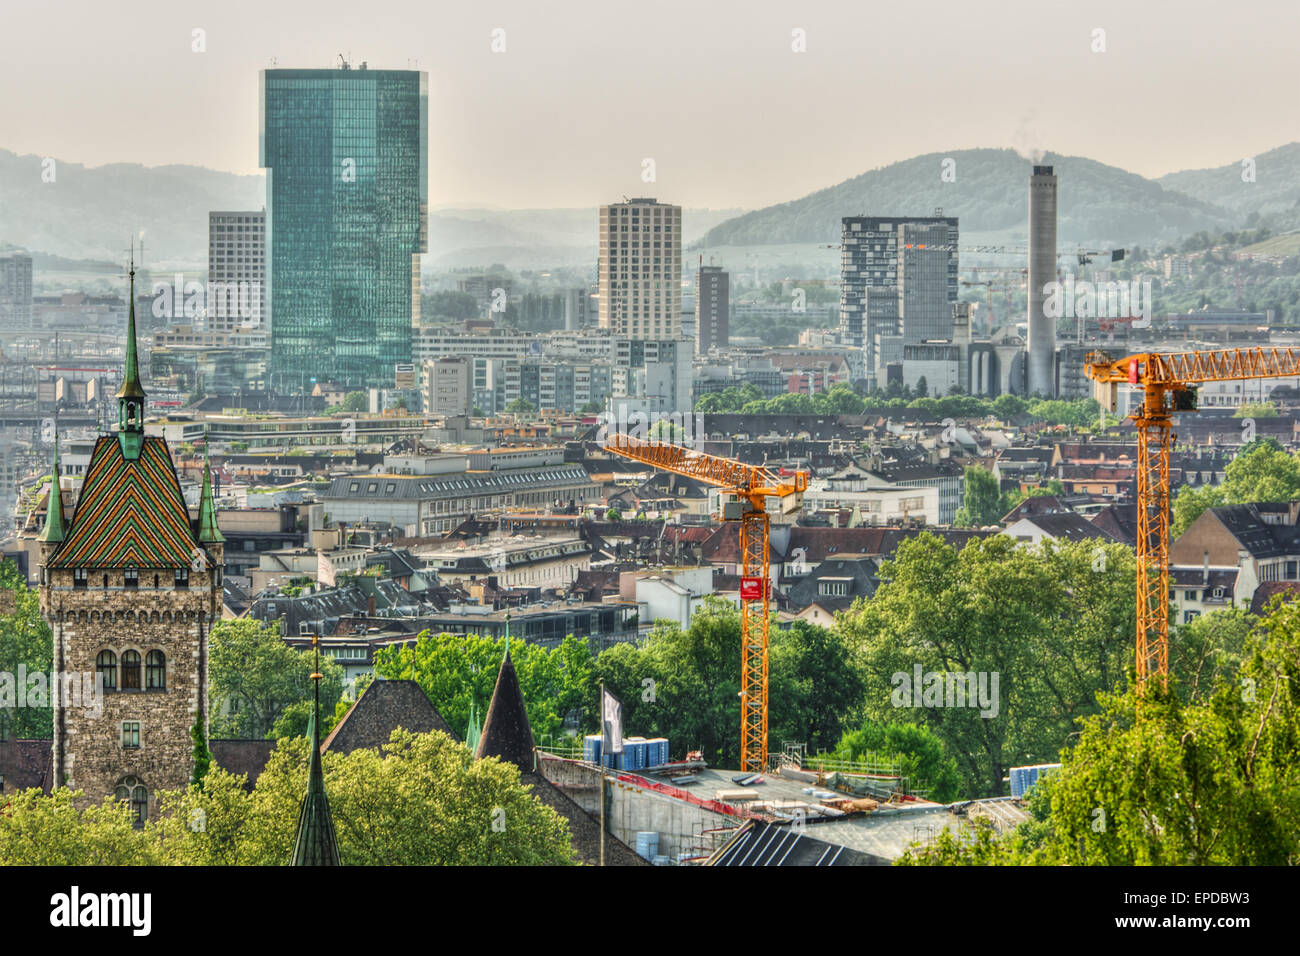 May 2015, buildings in Zurich (Switzerland), HDR-technique - Stock Image